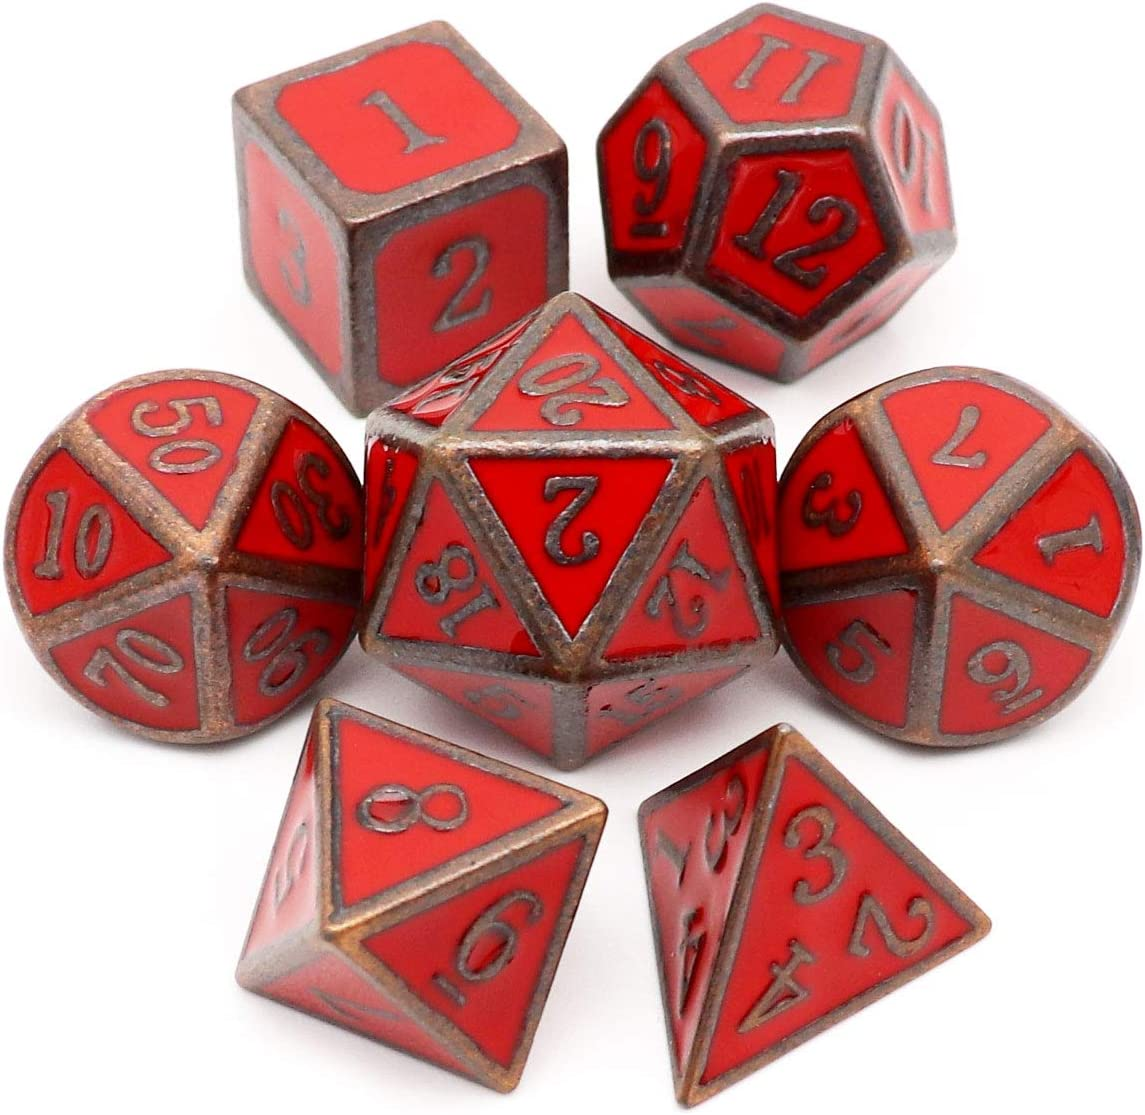 Haxtec Metal DND Dice Set D&D 7PCS of D20 D12 D10 D8 D6 D4 for Dungeons and Dragons TTRPG Games (Antique Copper Red)